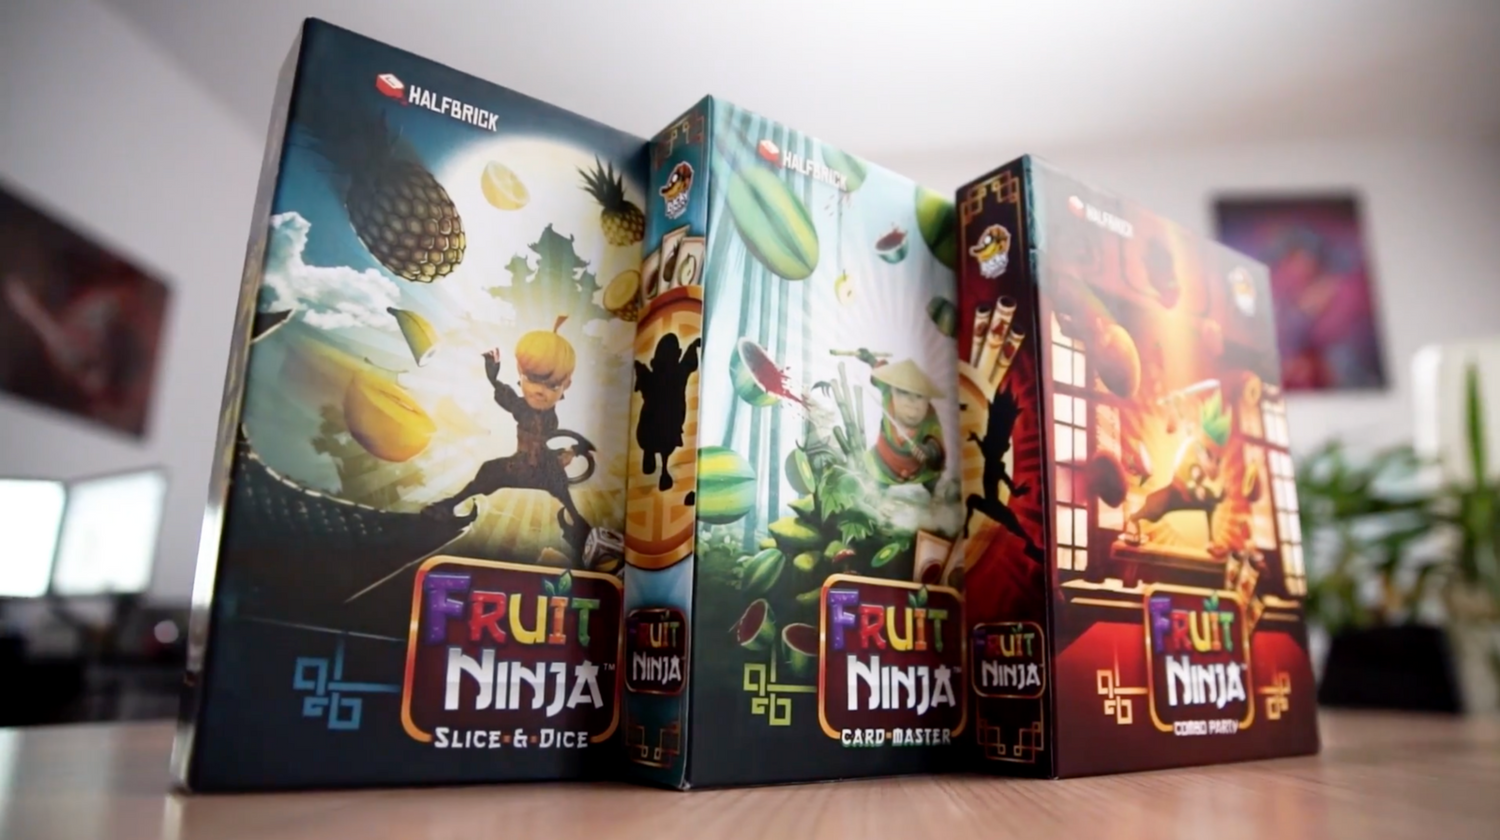 From Climbing to Slicing: The design diary of Fruit Ninja Slice